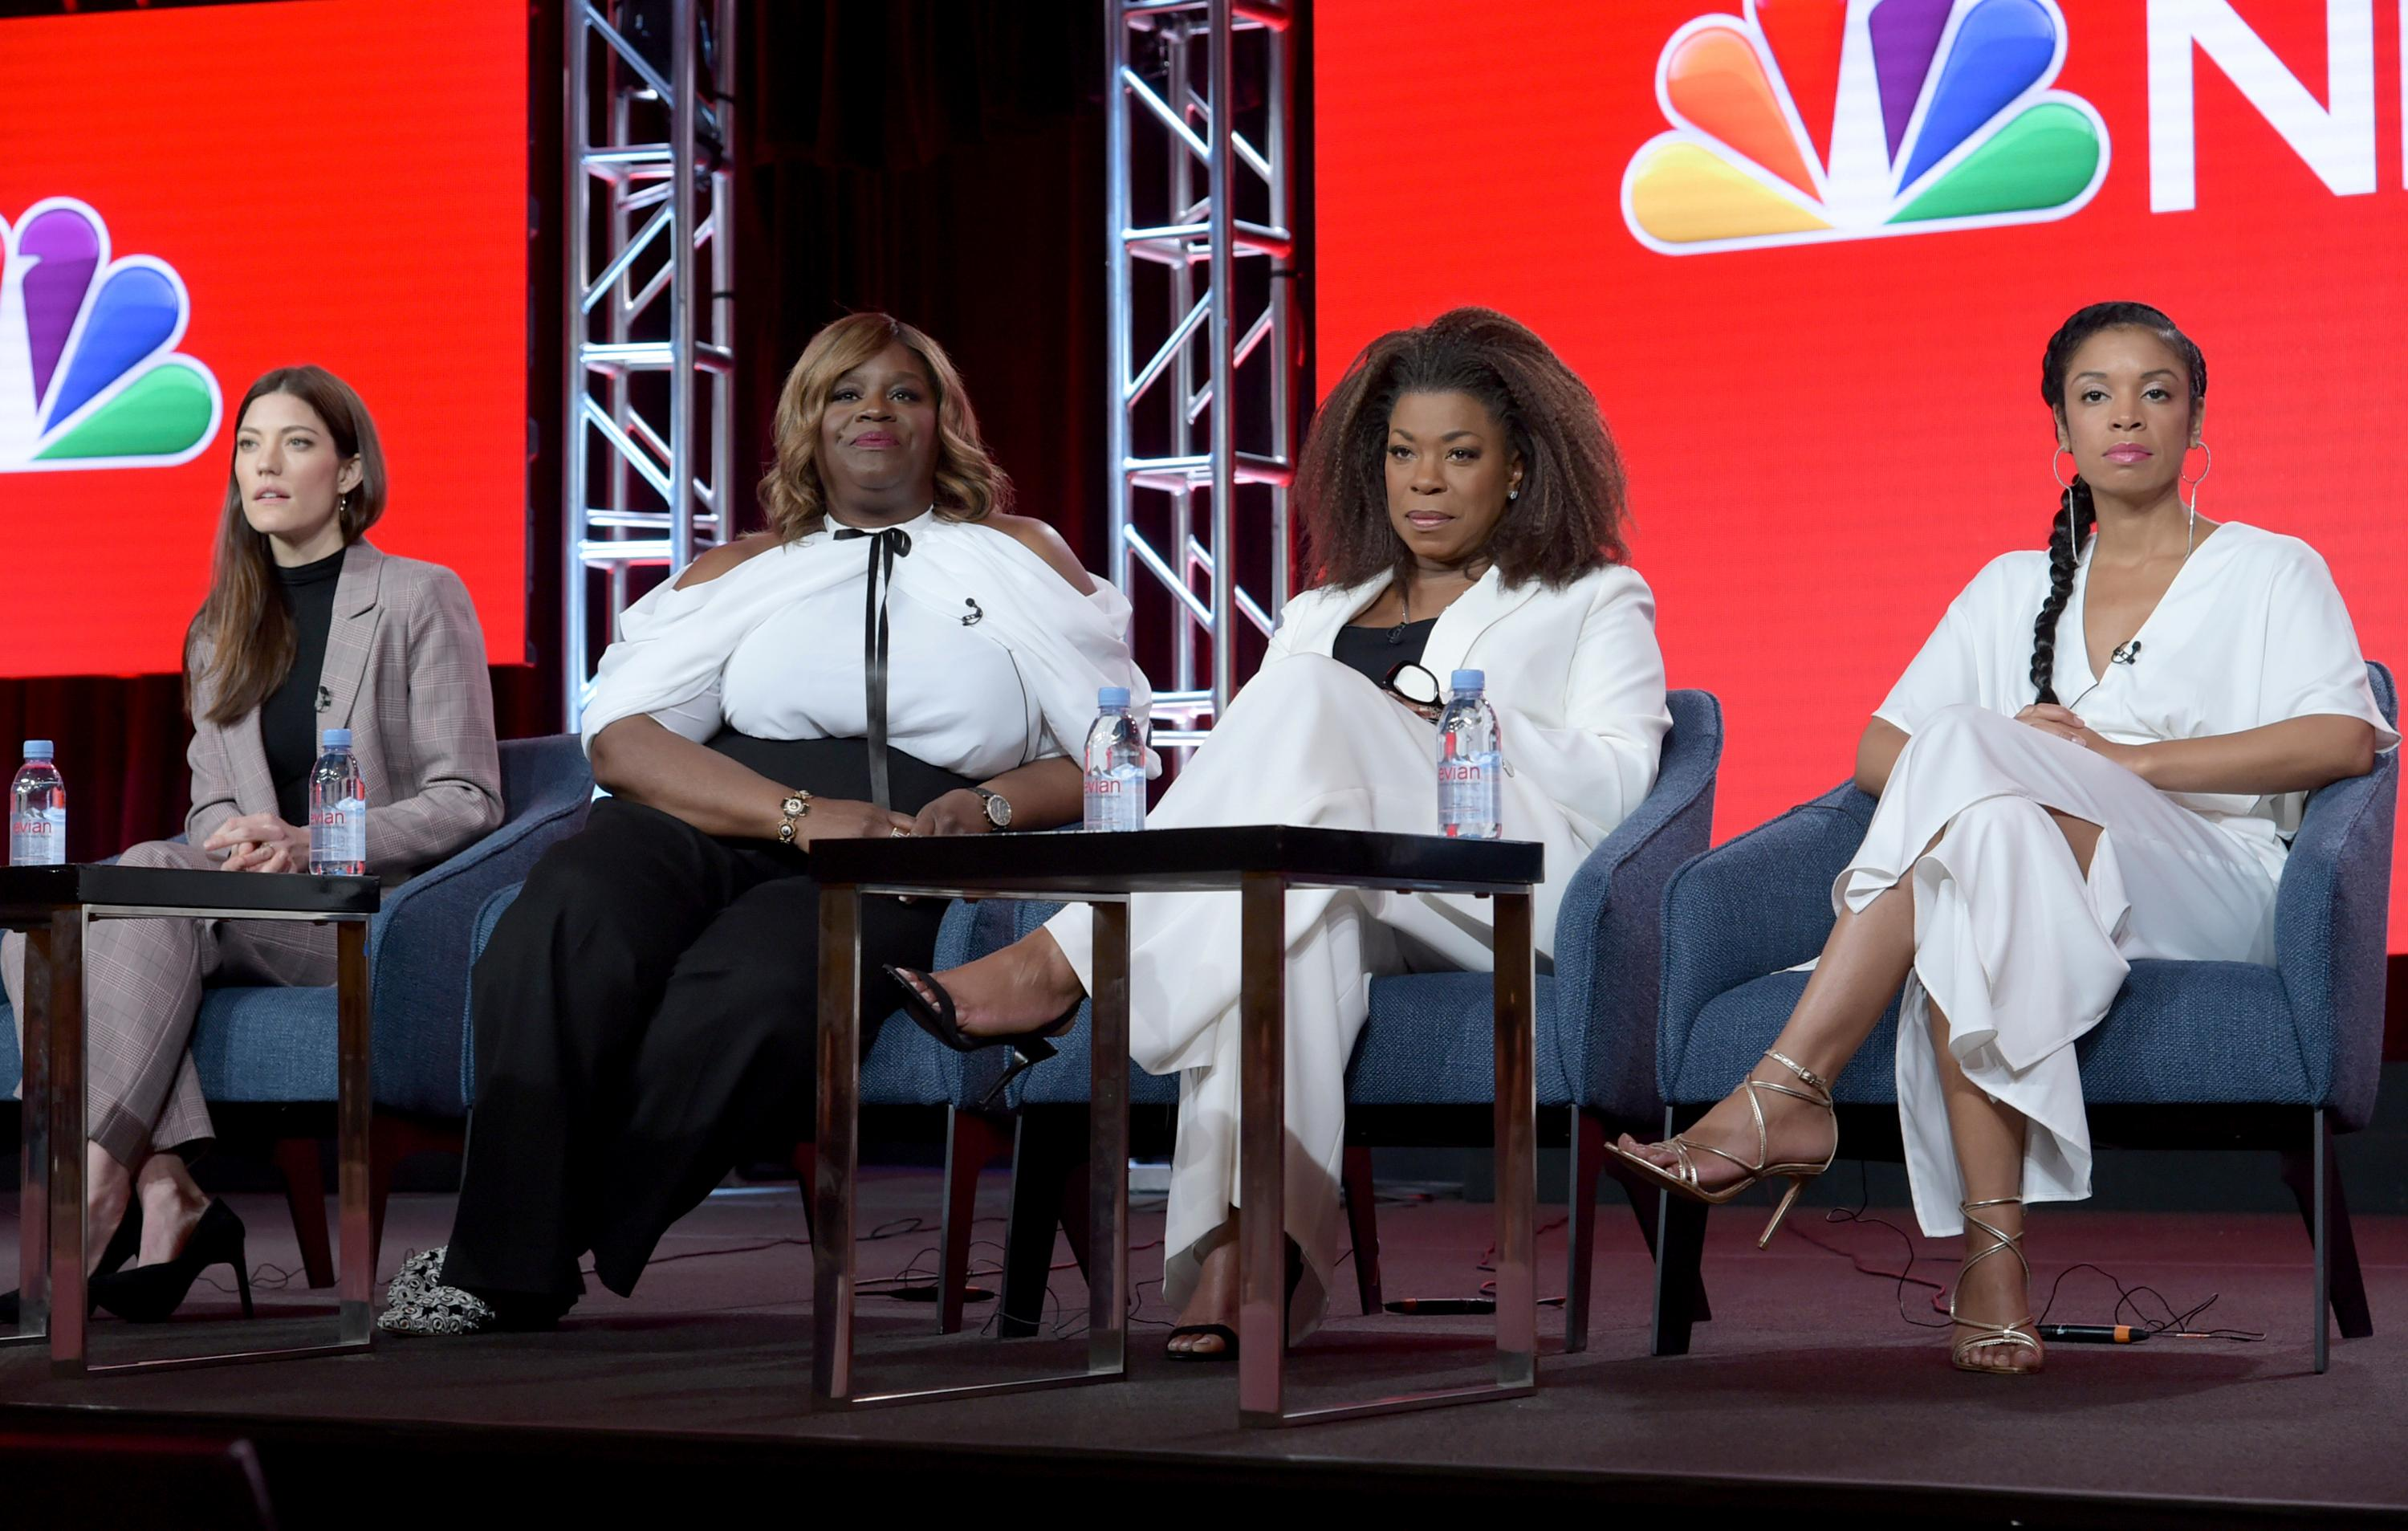 Jennifer Carpenter, from left, Retta, Lorraine Toussaint and Susan Kelechi Watson participate in the Women of Drama panel during the NBCUniversal TCA Winter Press Tour on Tuesday, Jan. 29, 2019, in Pasadena, Calif. (Photo by Richard Shotwell/Invision/AP)